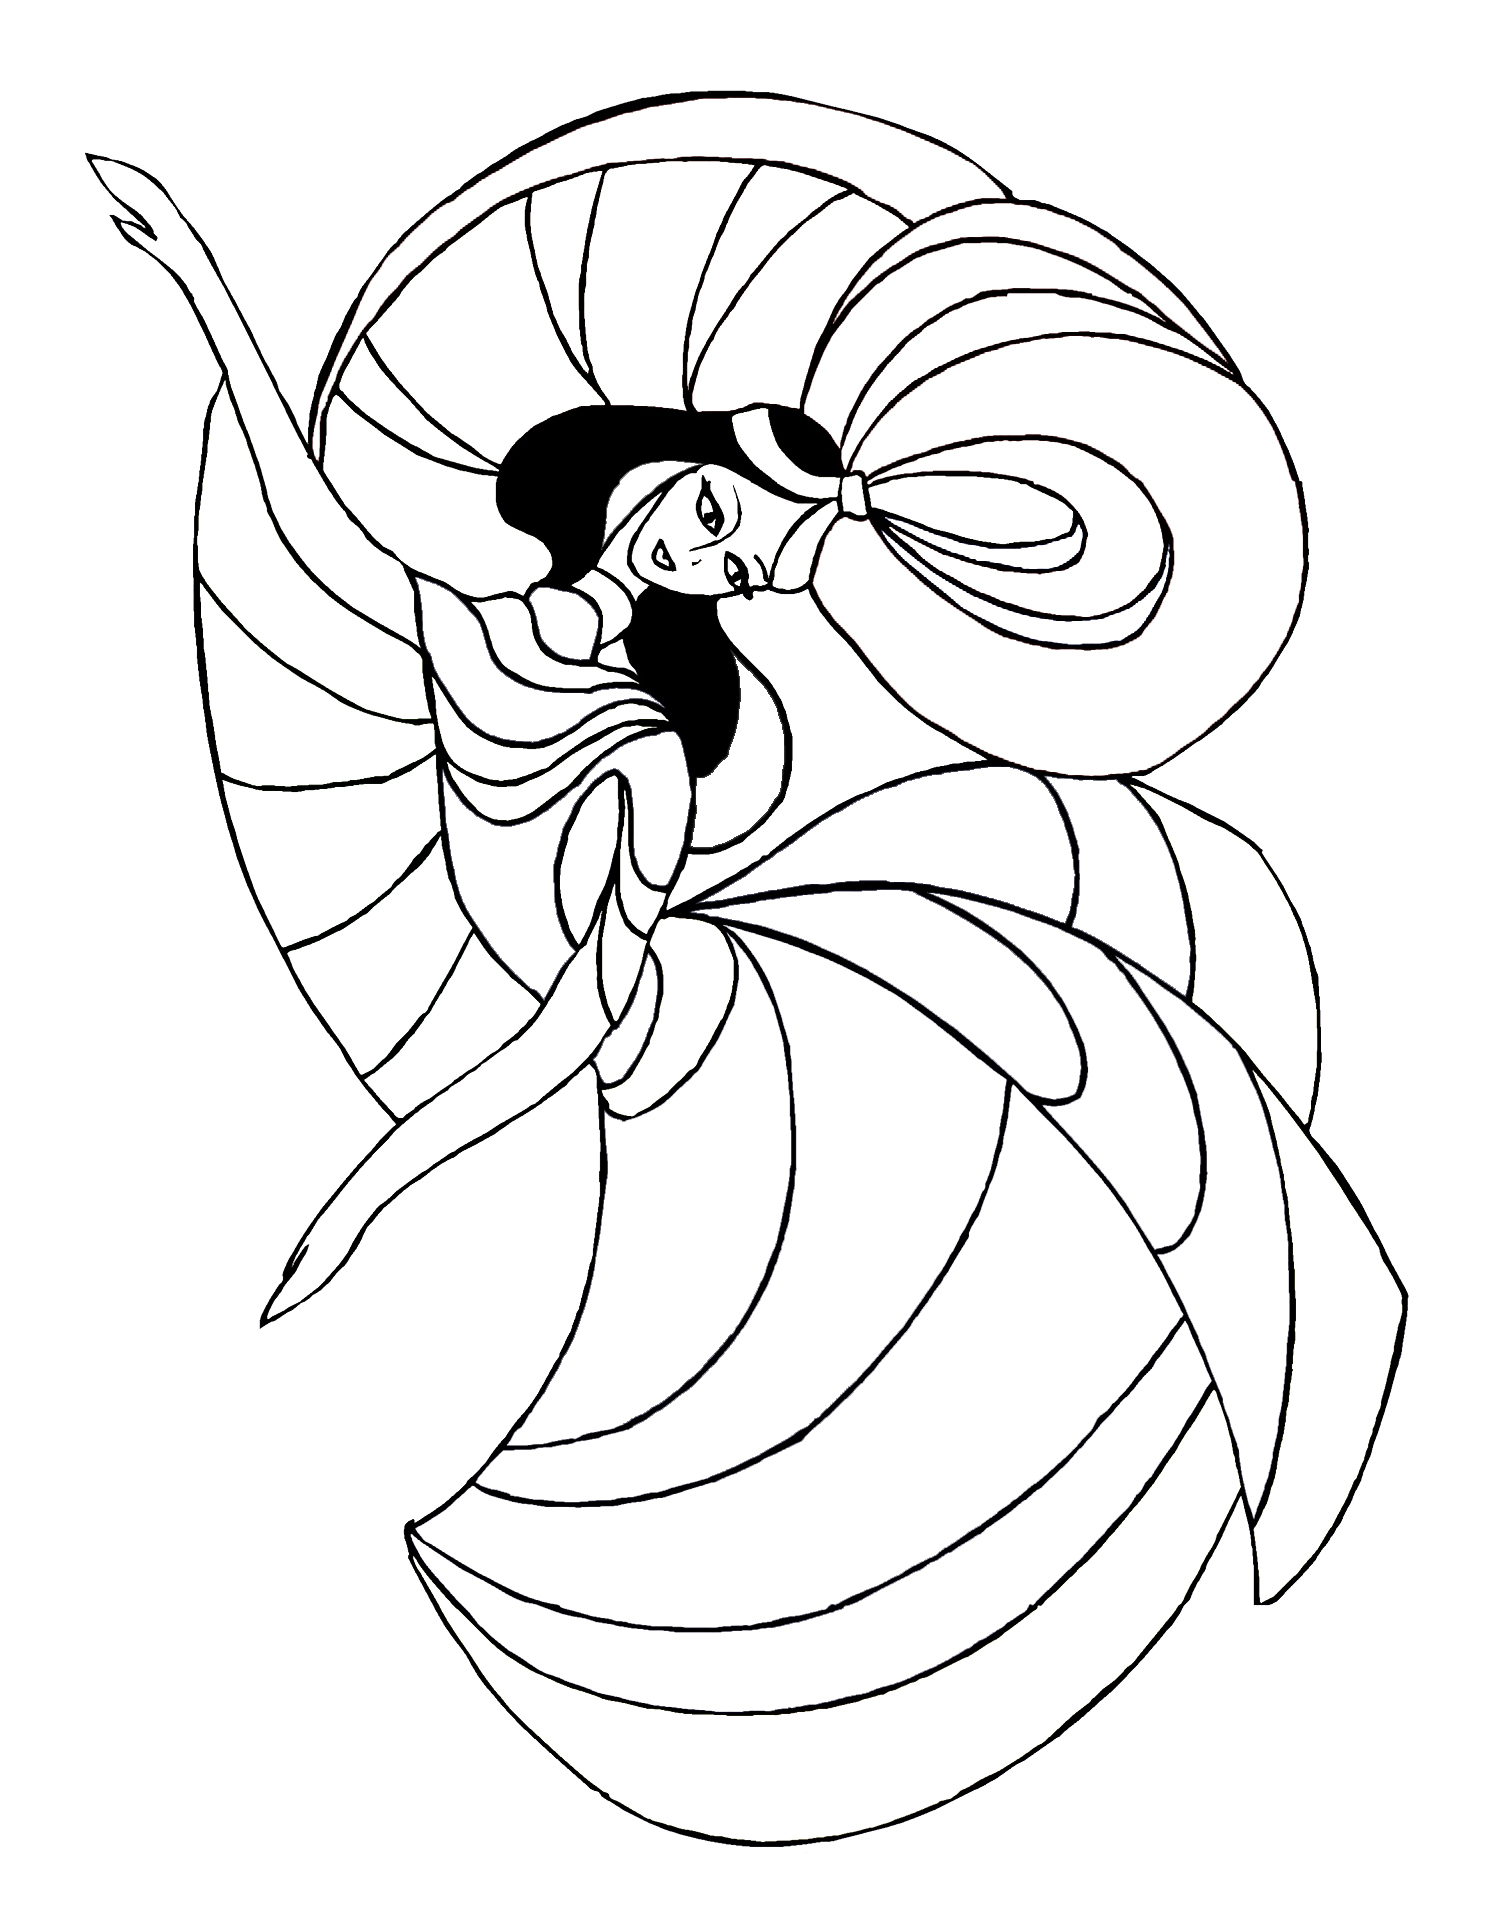 Black haired dancer for coloring